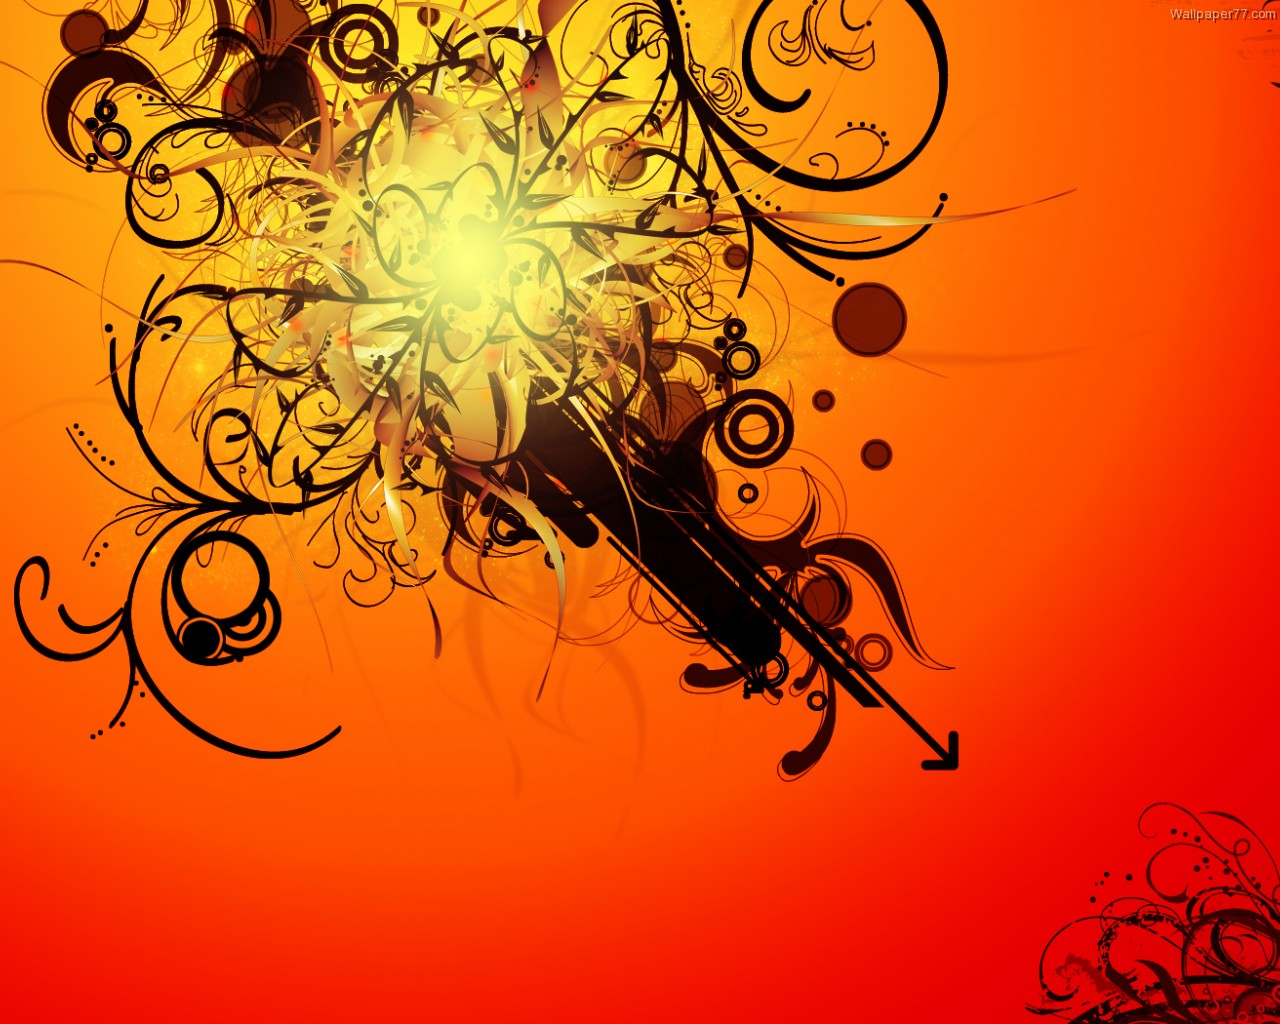 http://3.bp.blogspot.com/-BxA7W6Mv-yM/T9l6e36CHZI/AAAAAAAAAFA/ypRVhHjC5Ow/s1600/Orange-Vectors-abstract-wallpapers-vector-wallpaper-vectors-1280x1024.jpg